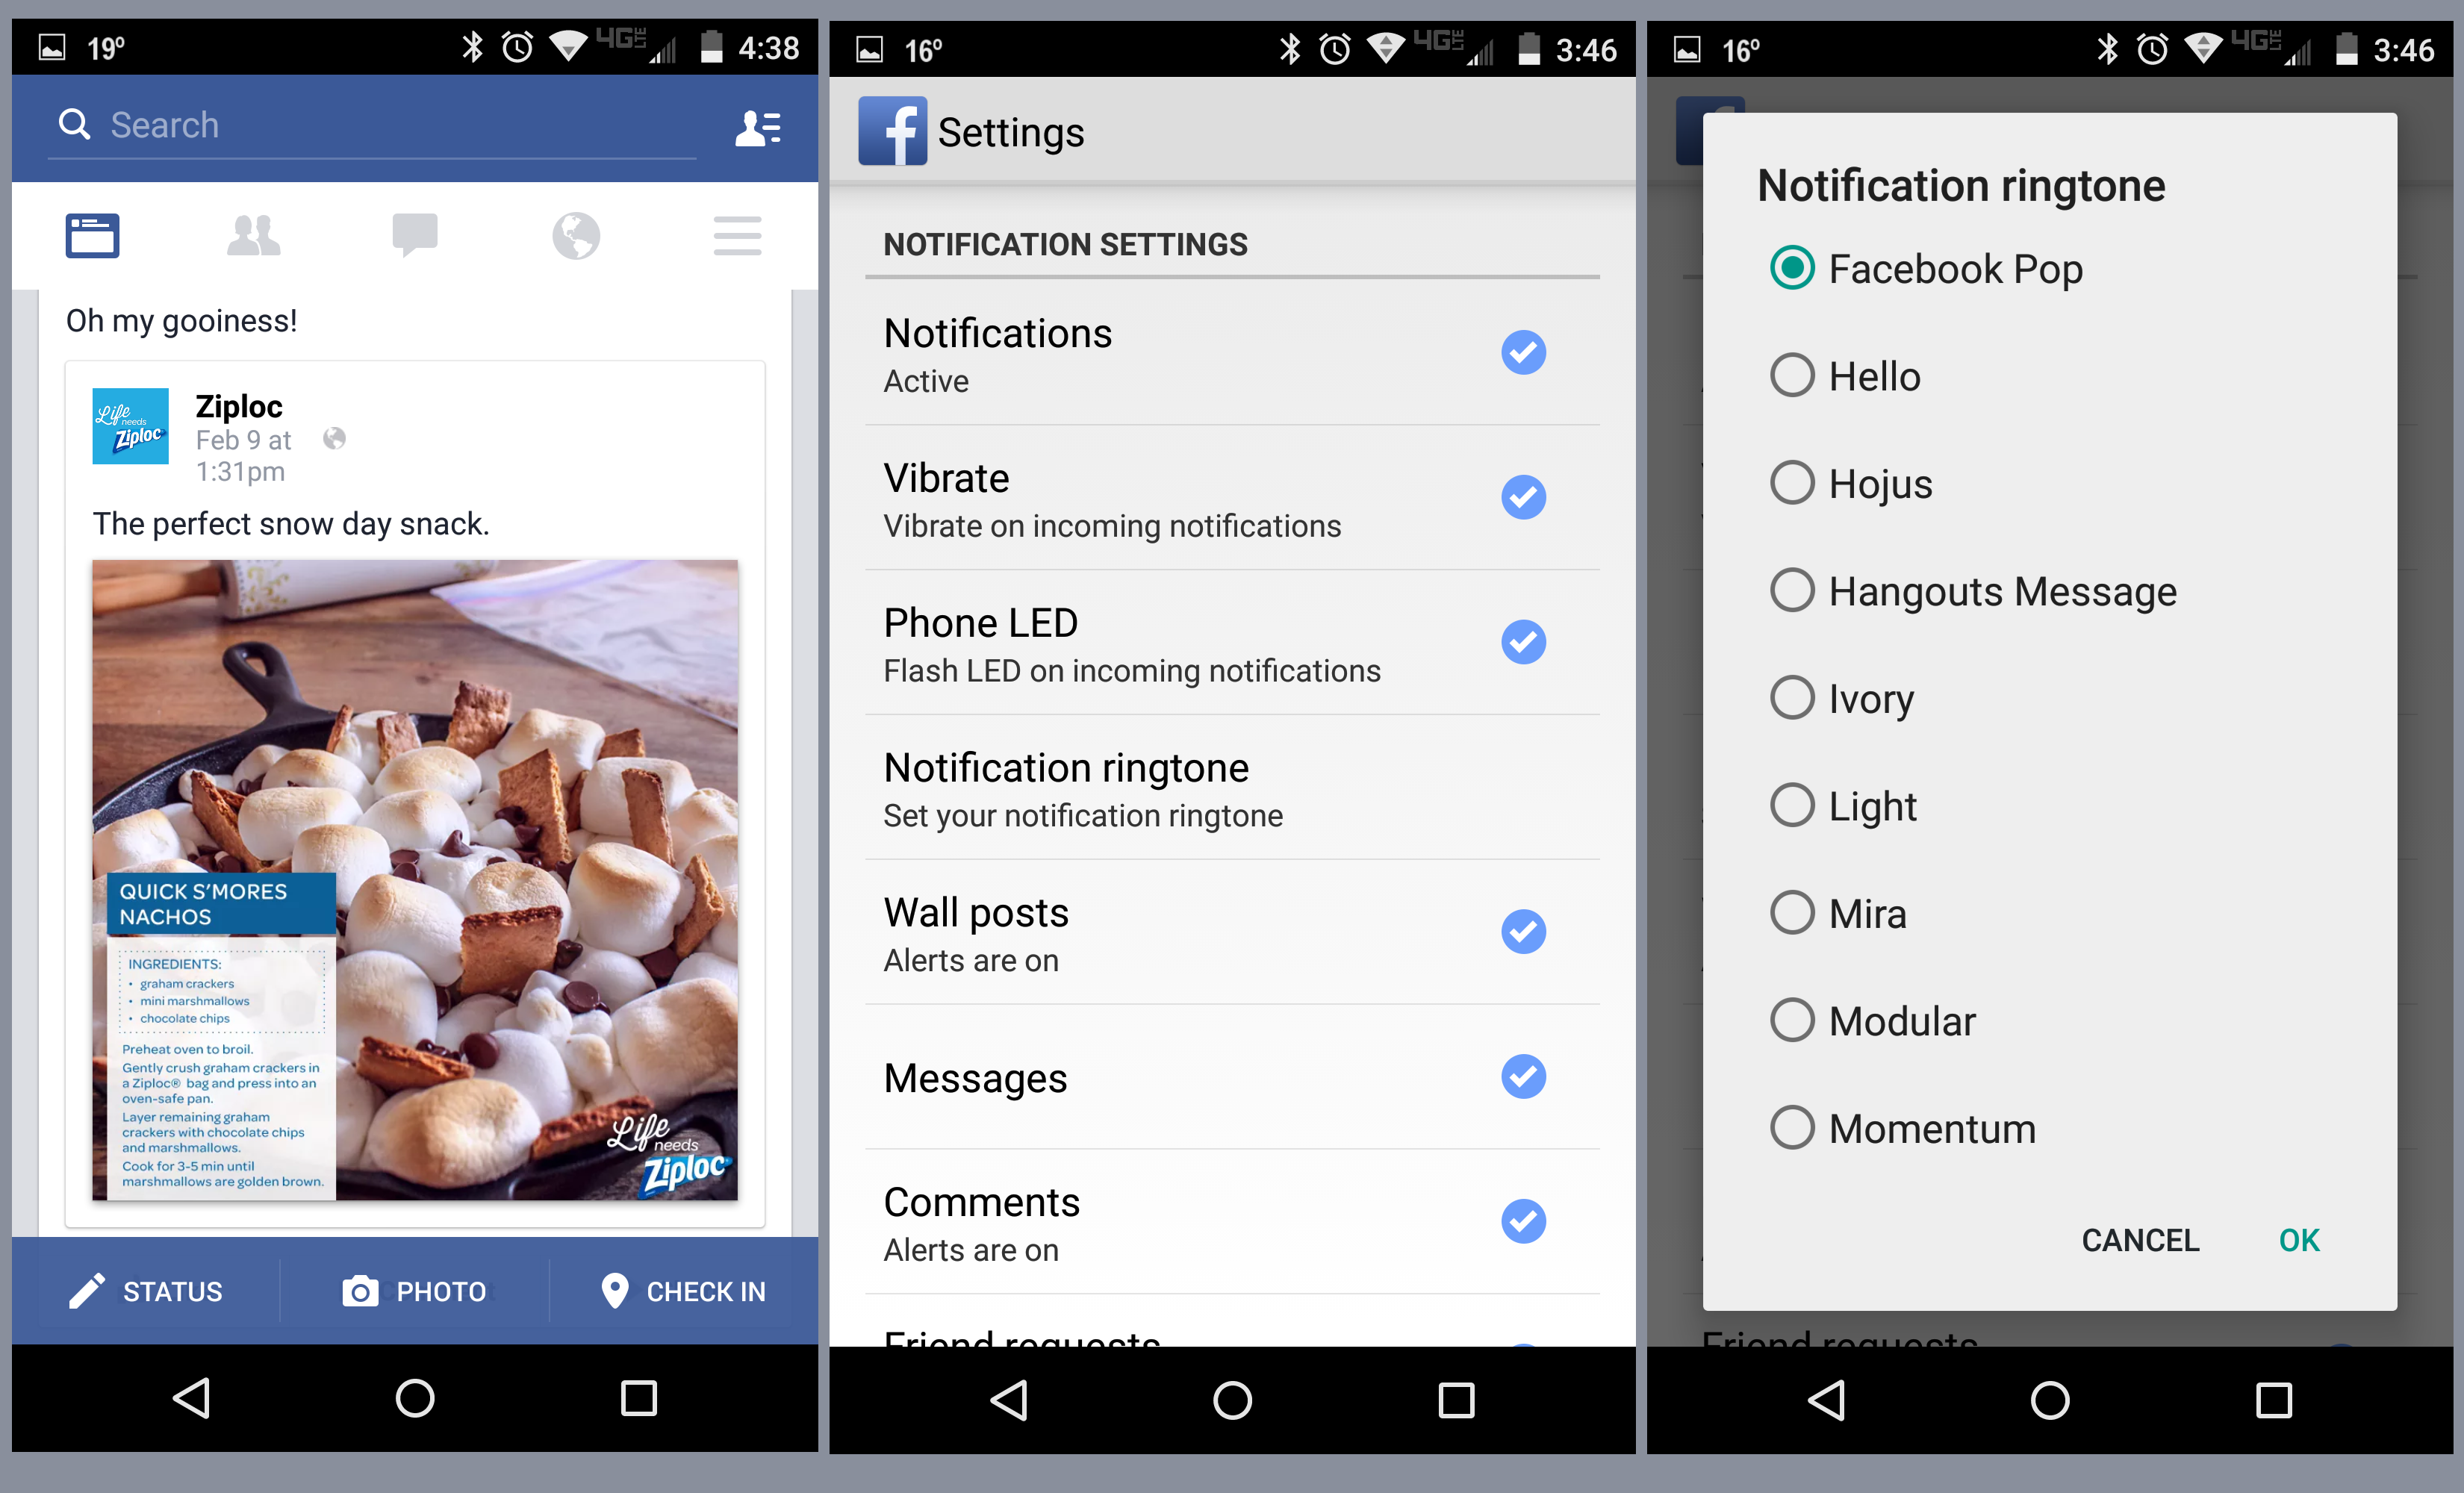 How To: Disable or enable sounds in Facebook app for Android - AIVAnet